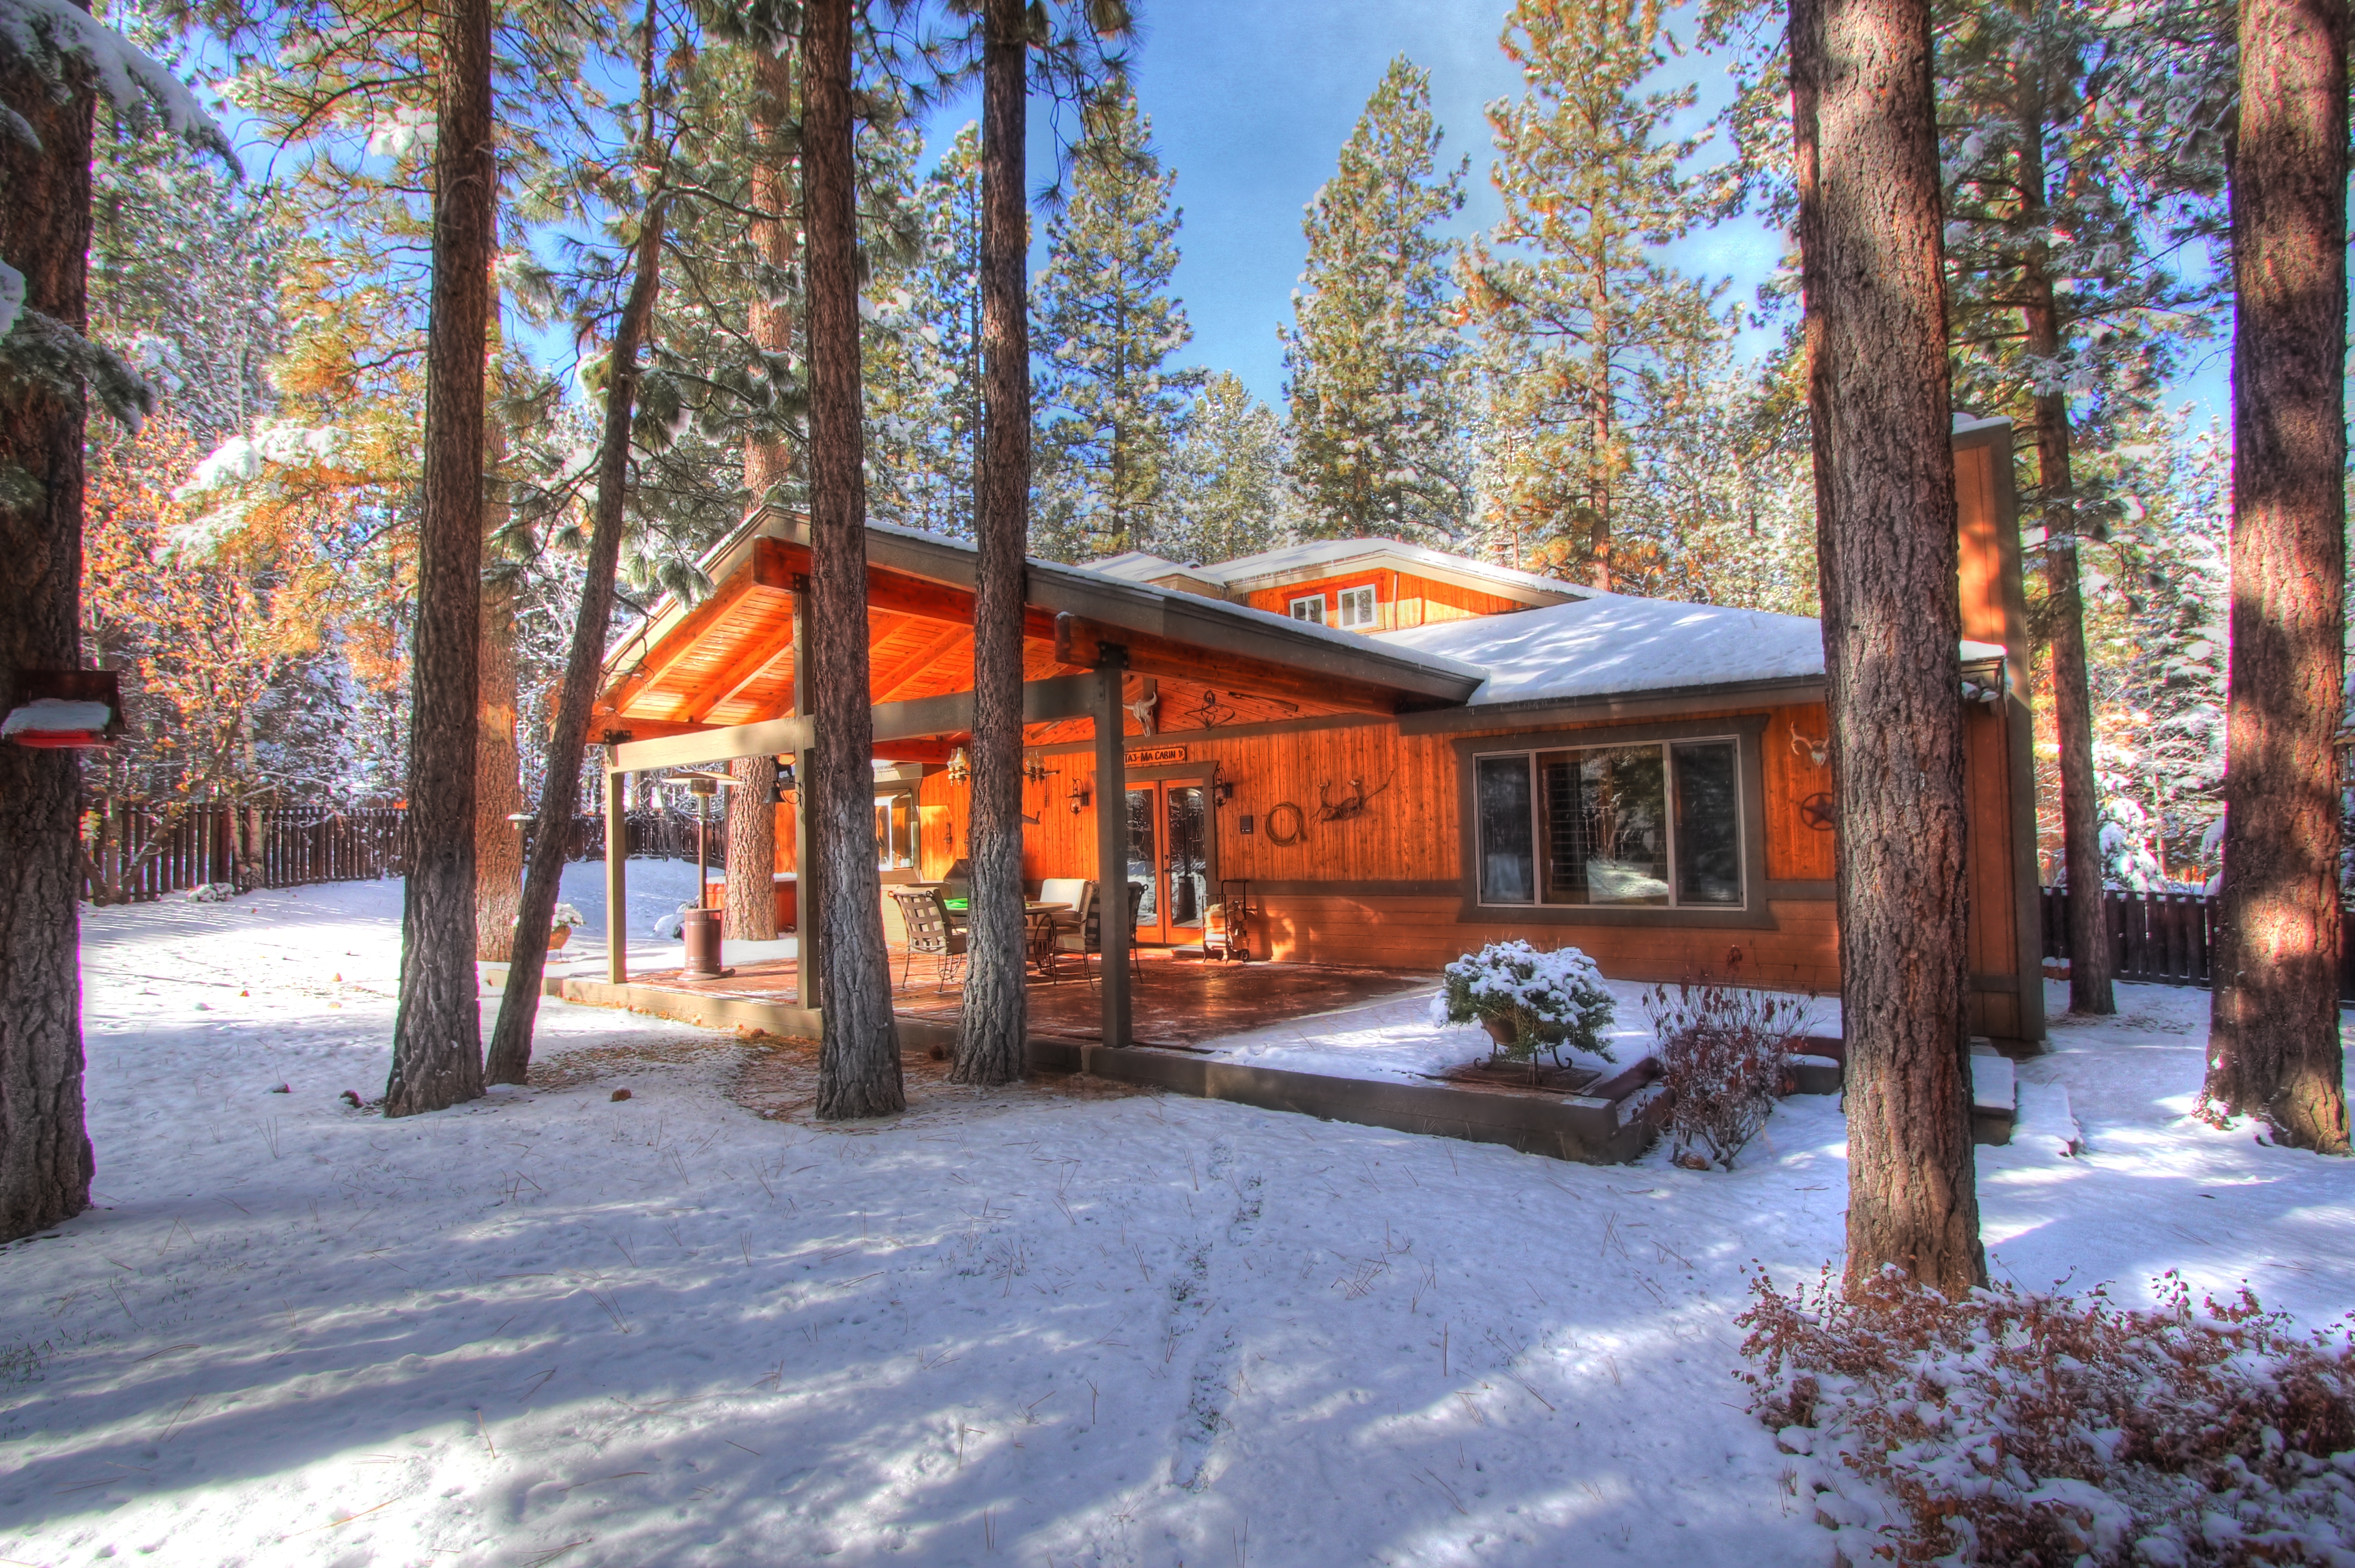 tips camping lake and bear mountain cabin trip big travel ideas cabins unique skiing rentals airbnb california